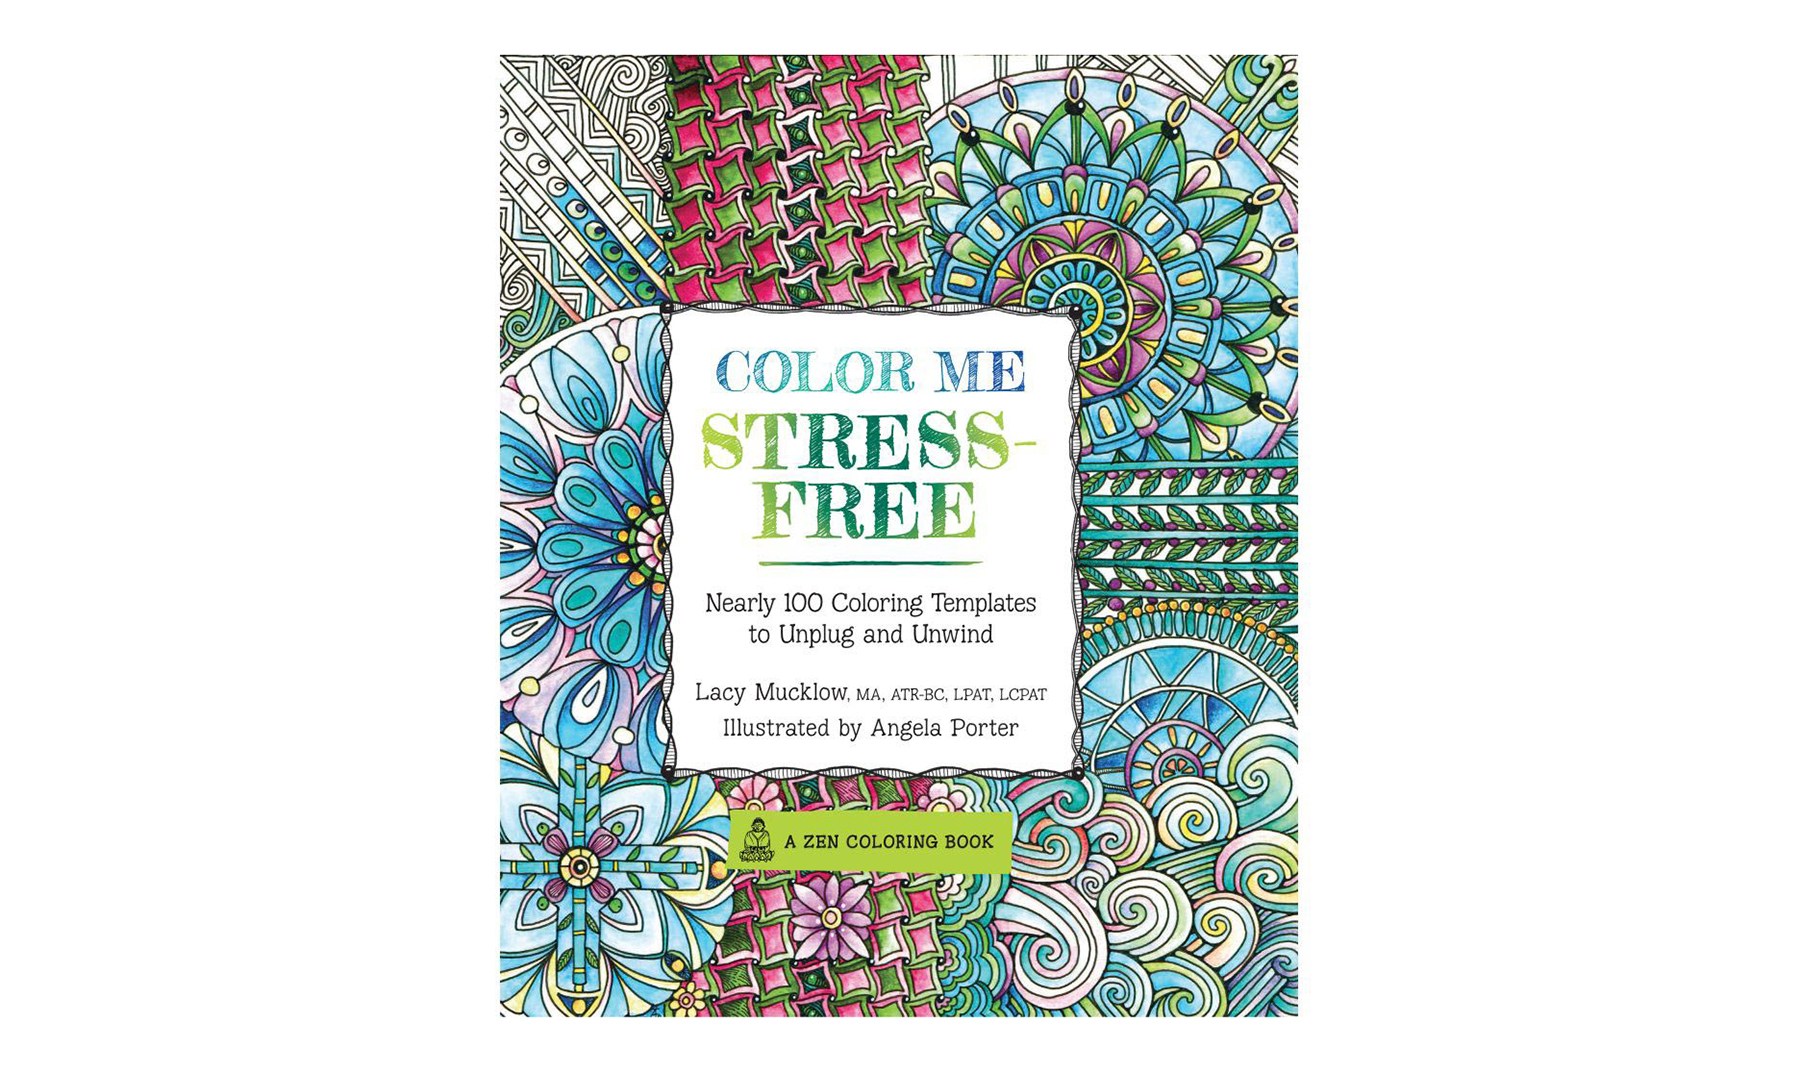 Color Me Stress Free By Lacy Mucklow And Angela Porter